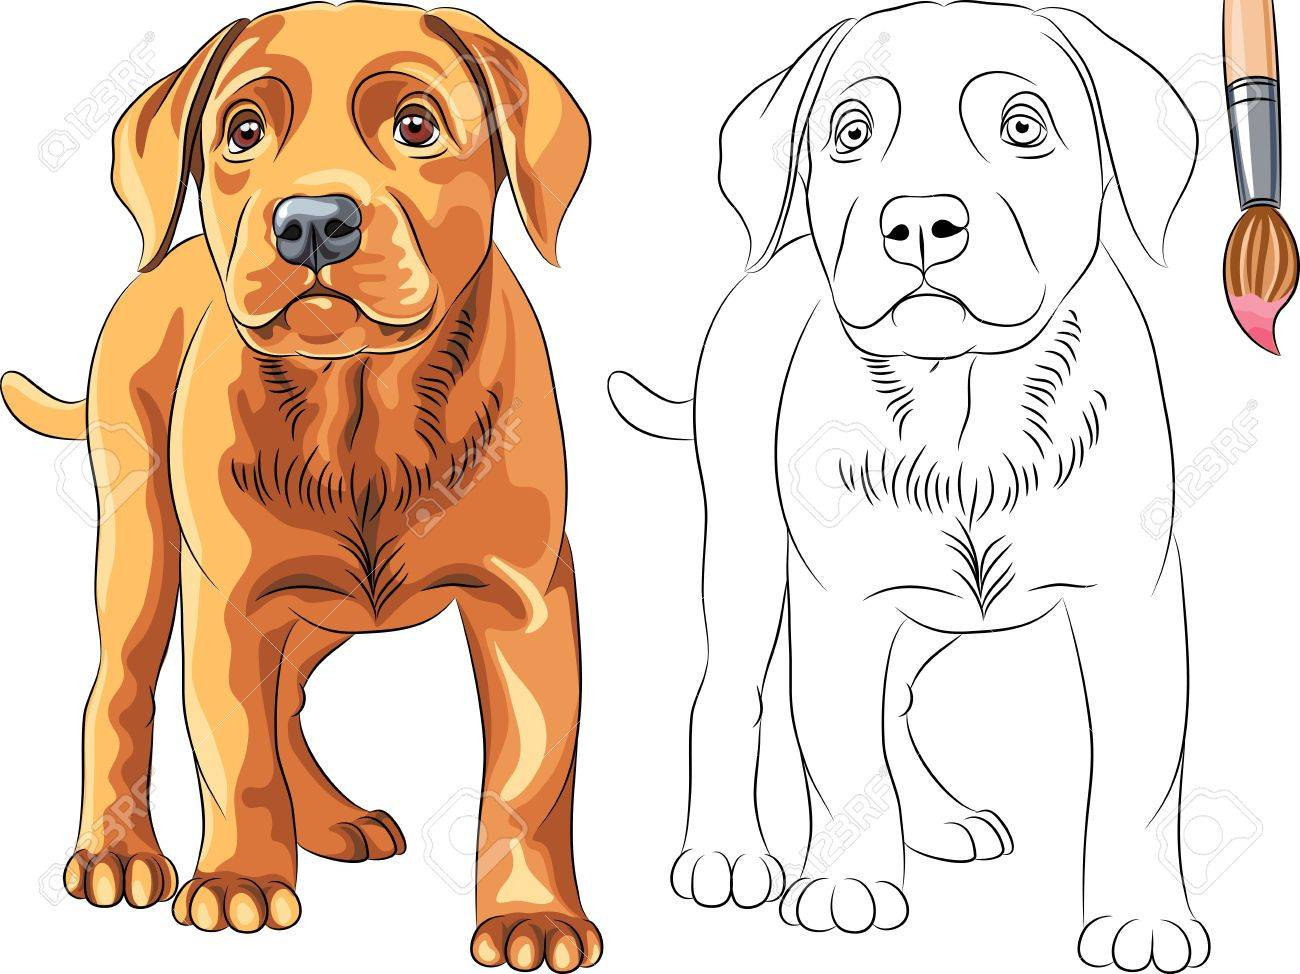 Coloring Book for Children of funny serious Puppy dog Labrador Retriever breed Stock Vector - 18083881